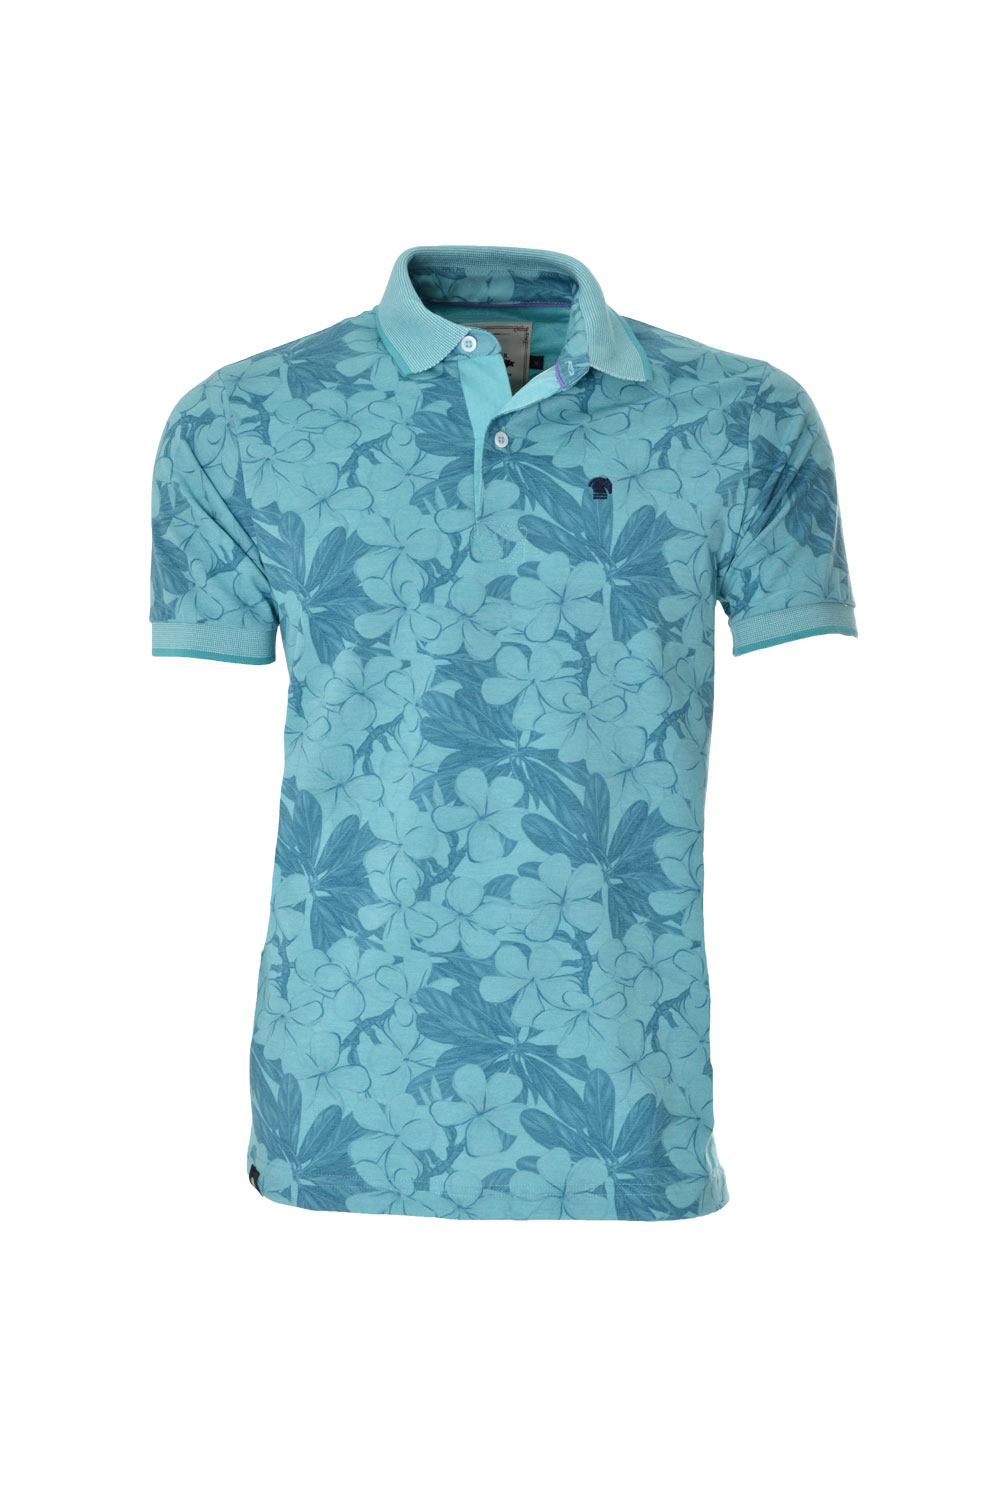 POLO MC CASUAL SUPER SLIM POLIALGODAO FIO TINTO ESTAMPA AZUL CLARO